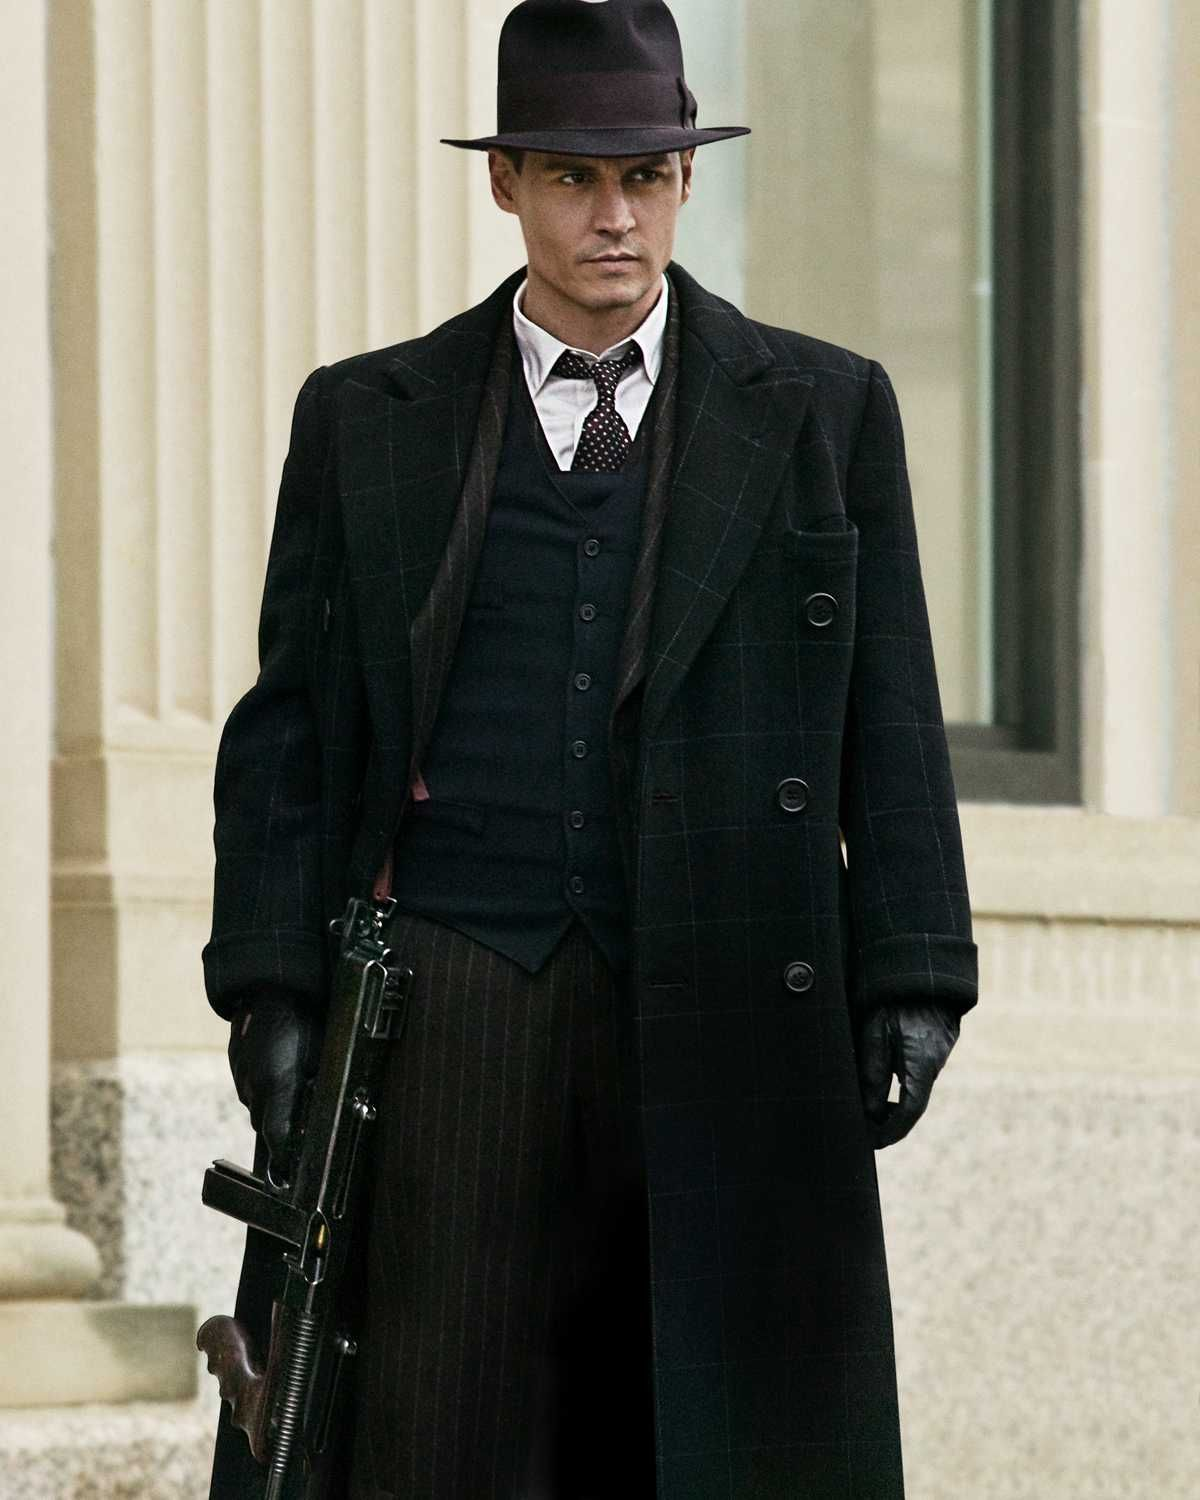 public enemies movie image Johnny Depp (3).jpg